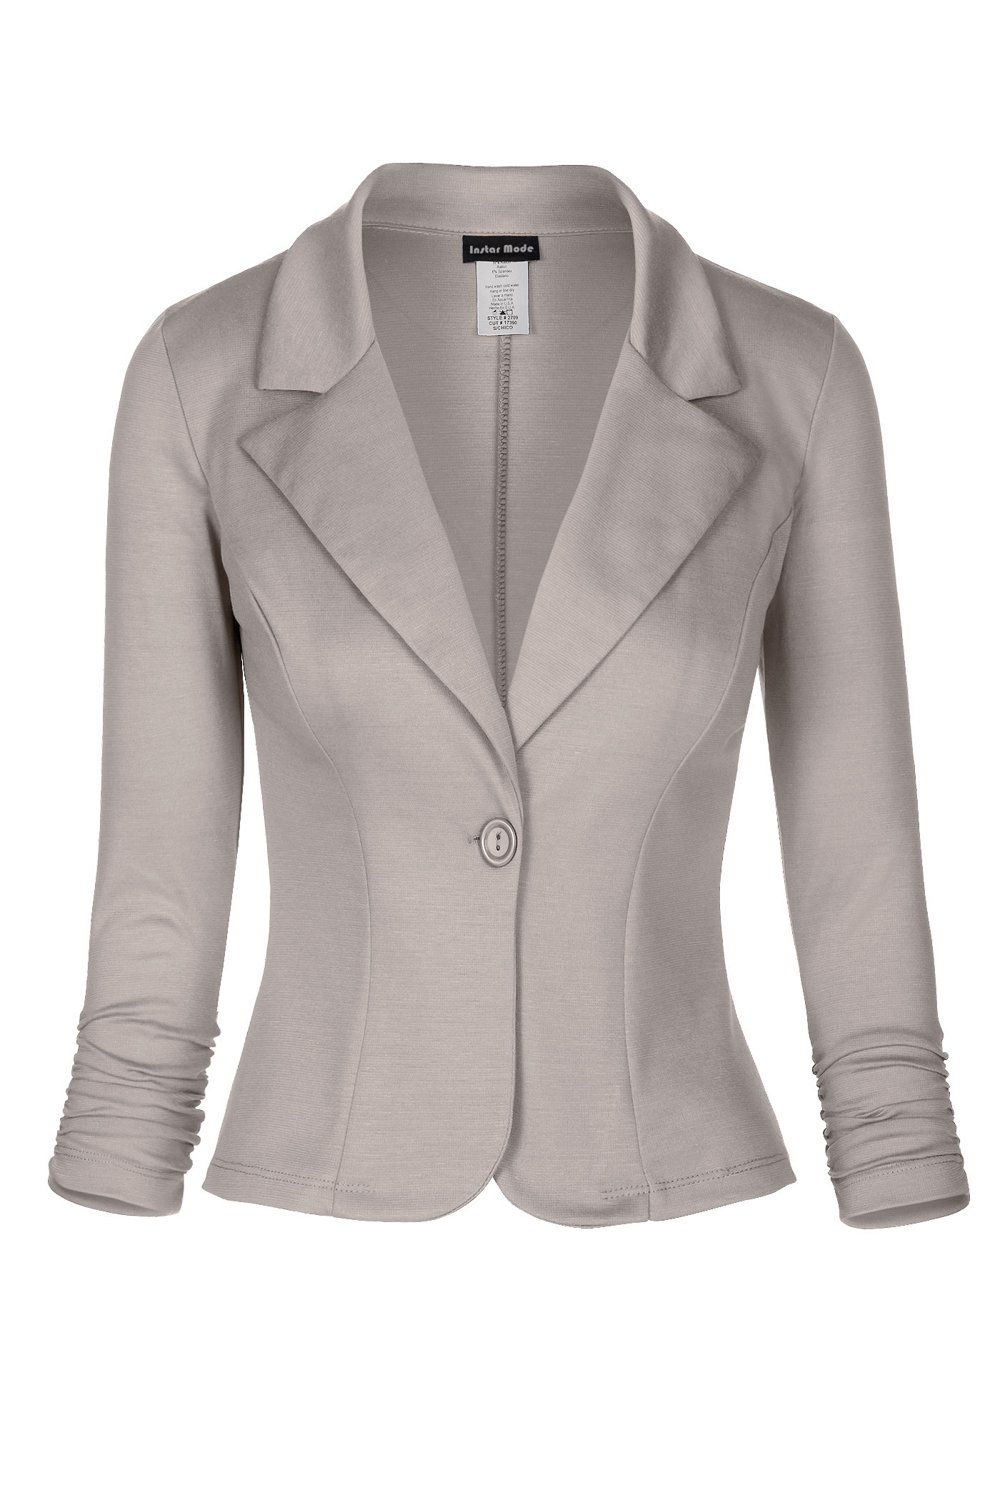 Instar Mode Women's Versatile Business Attire Blazers in Varies Styles (B028214 Heather Grey, Large)